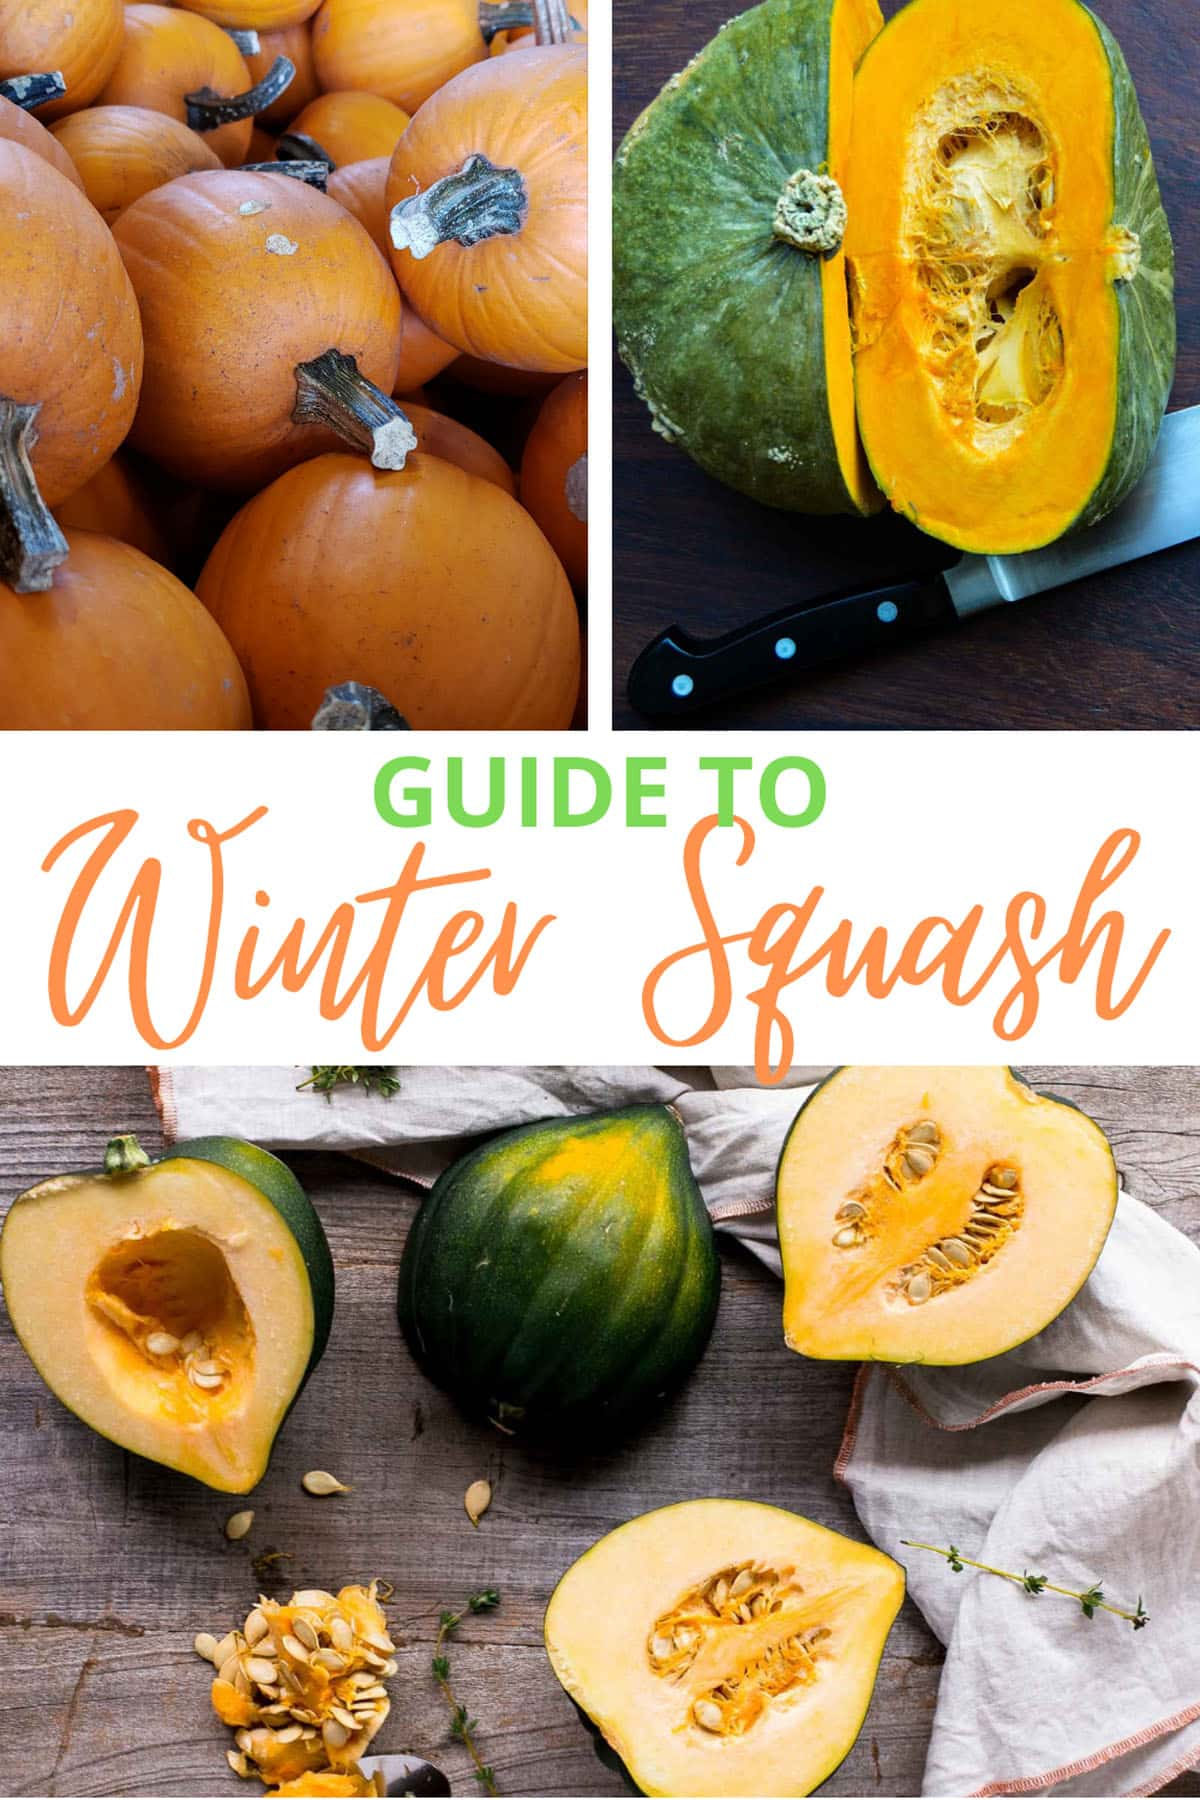 image collage of different winter squash with a text overlay